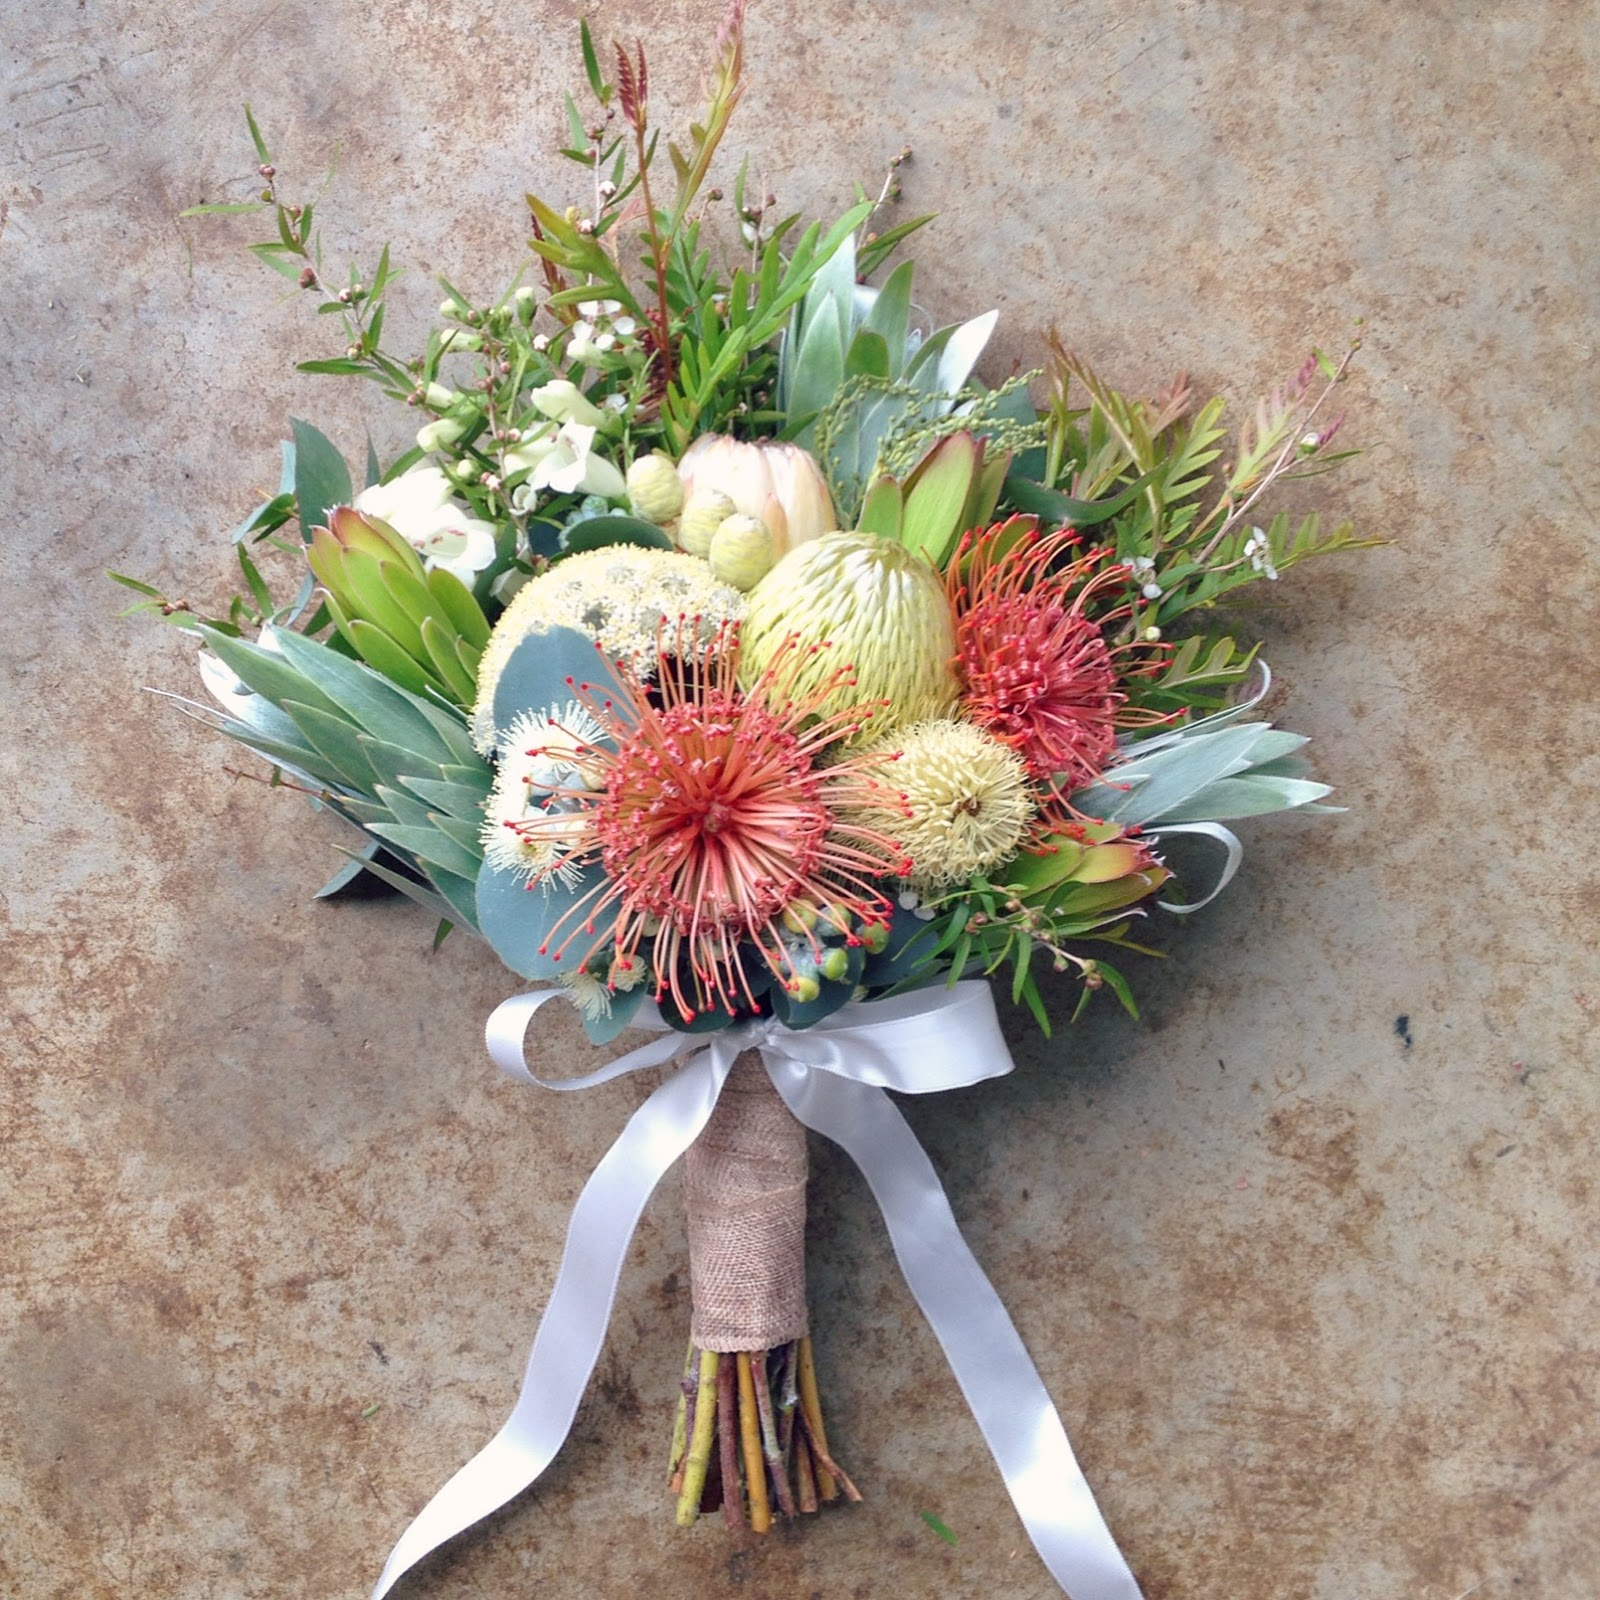 Swallows nest farm 2016 for the bridal bouquet i used a protea white ice two types of banksia banksia baxterii the birdsnest banksia and banksia marginata a local native izmirmasajfo Images